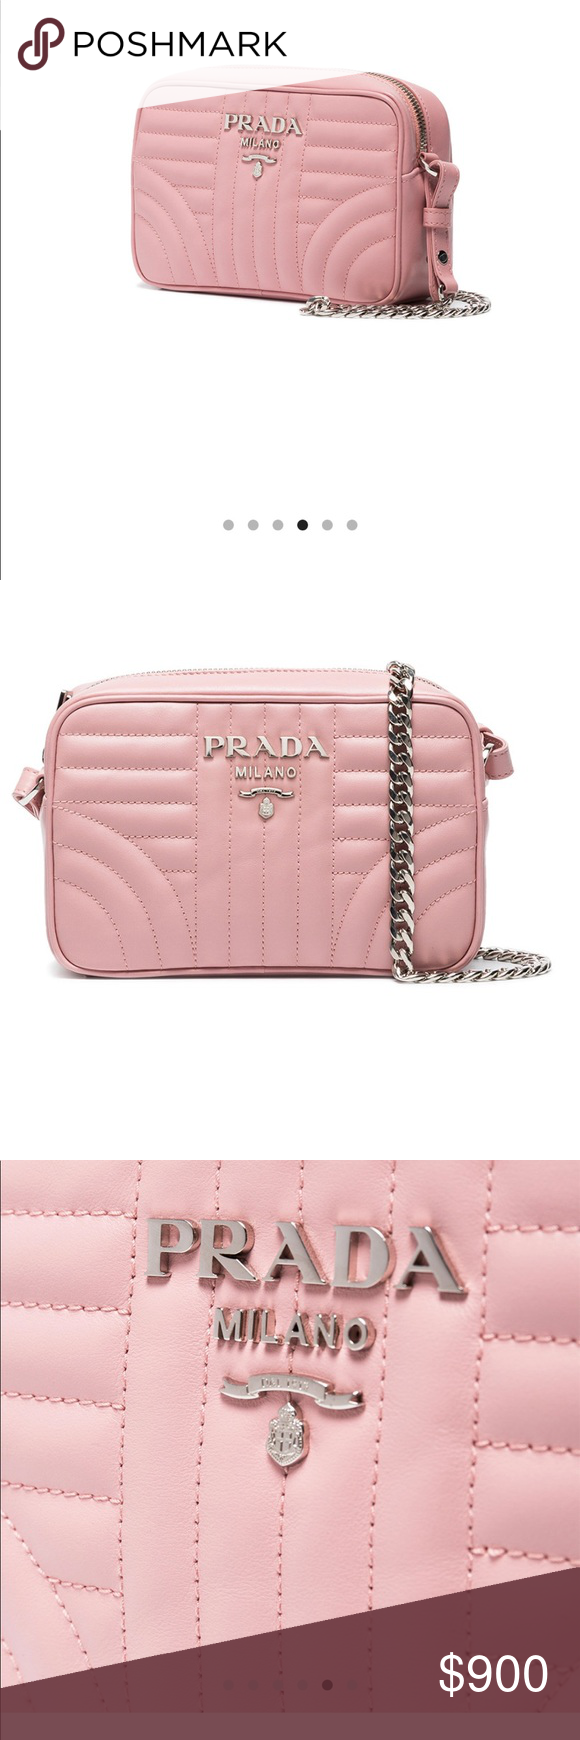 f19b31779fcf Prada diagramme cross body bag (coming soon) Brand new with tag and  authenticity card